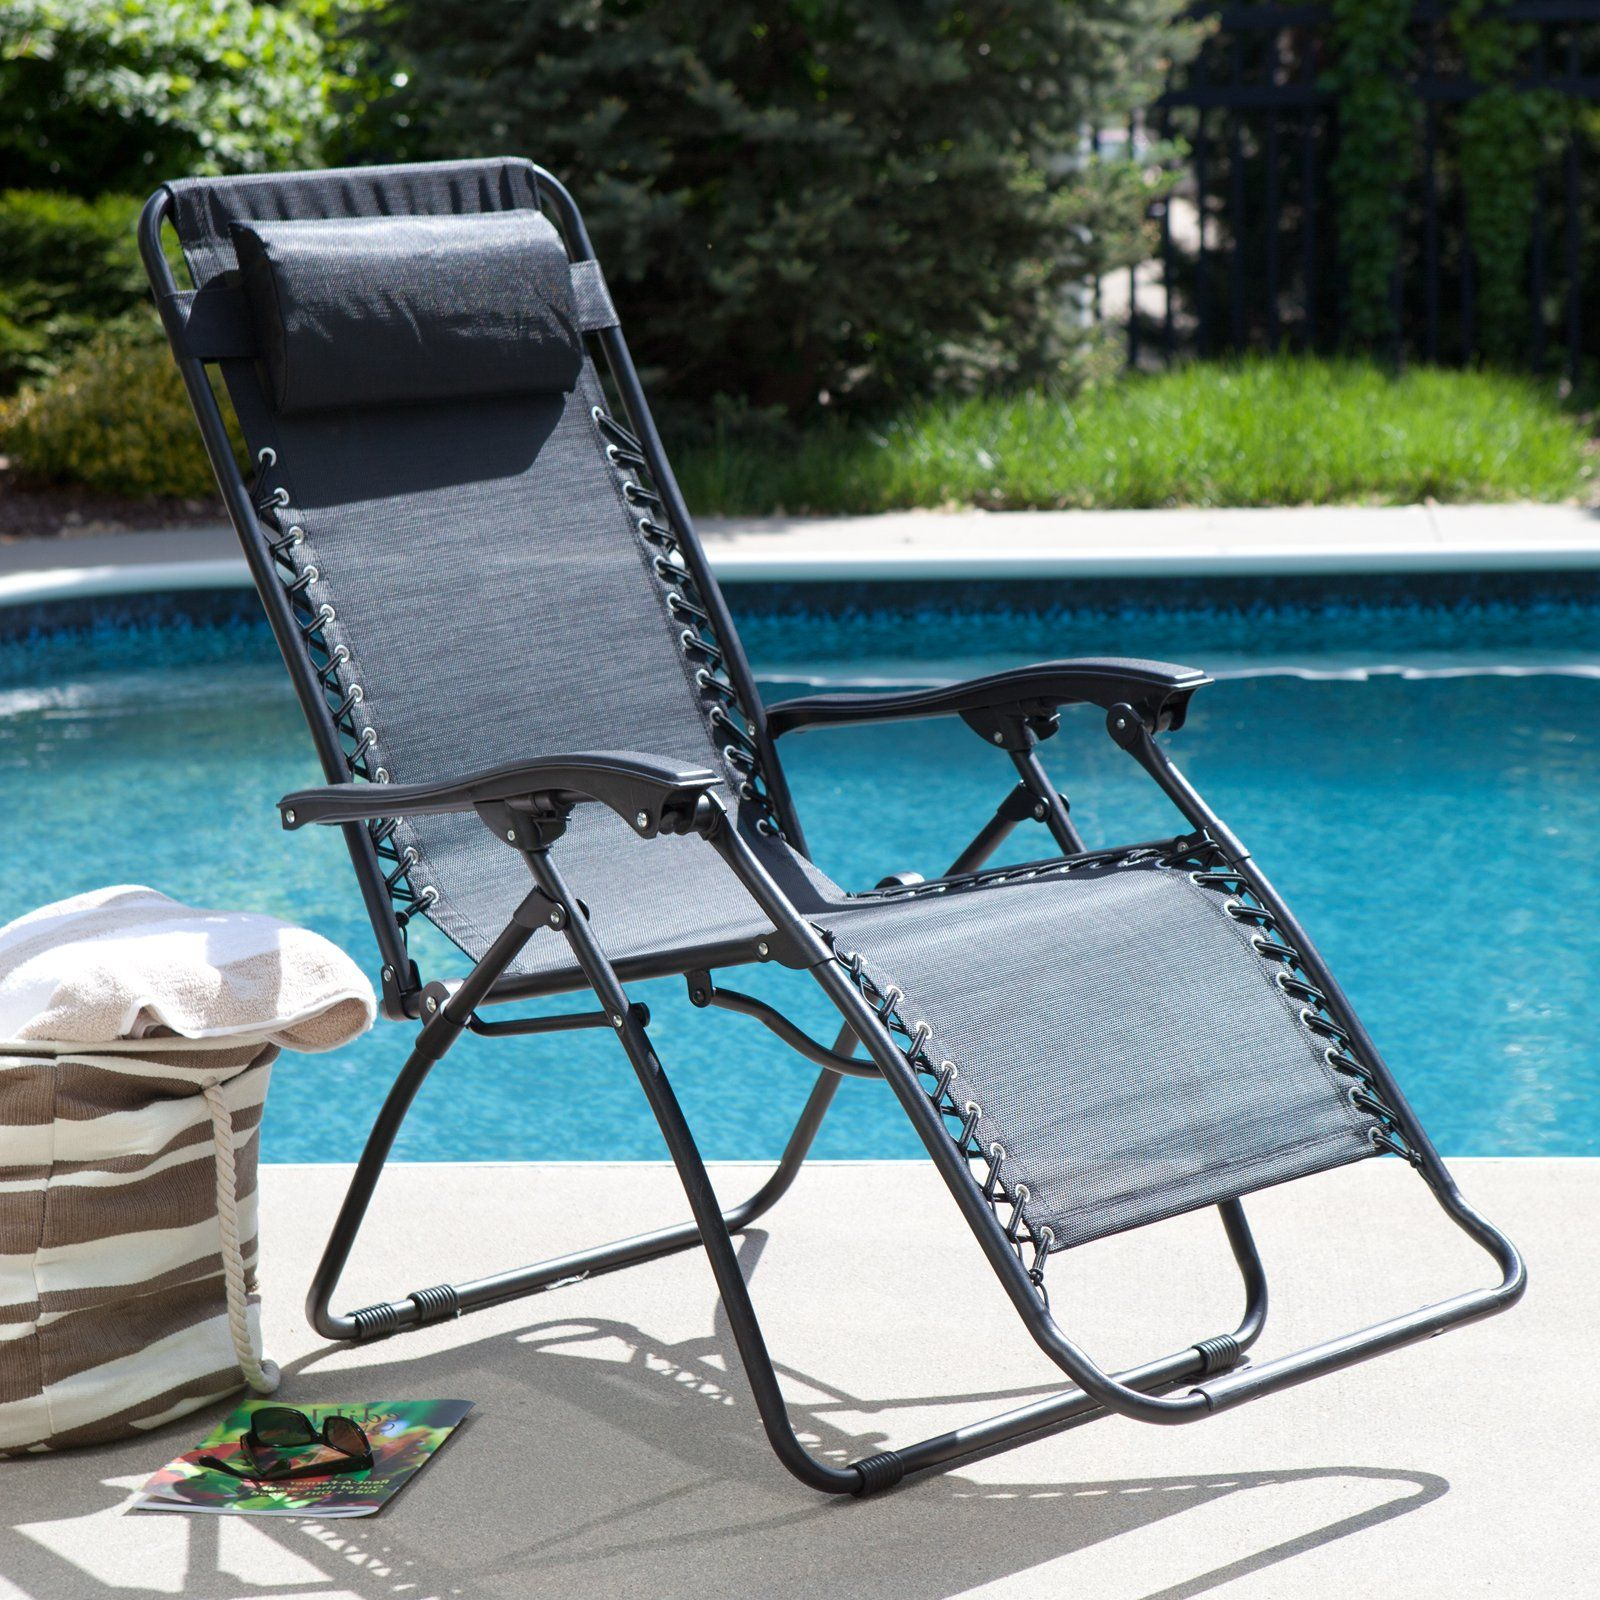 Oversized Zero Gravity Chair With Canopy 55 43 5 Rush Sh Caravan Canopy Zero Gravity Lounge Chair